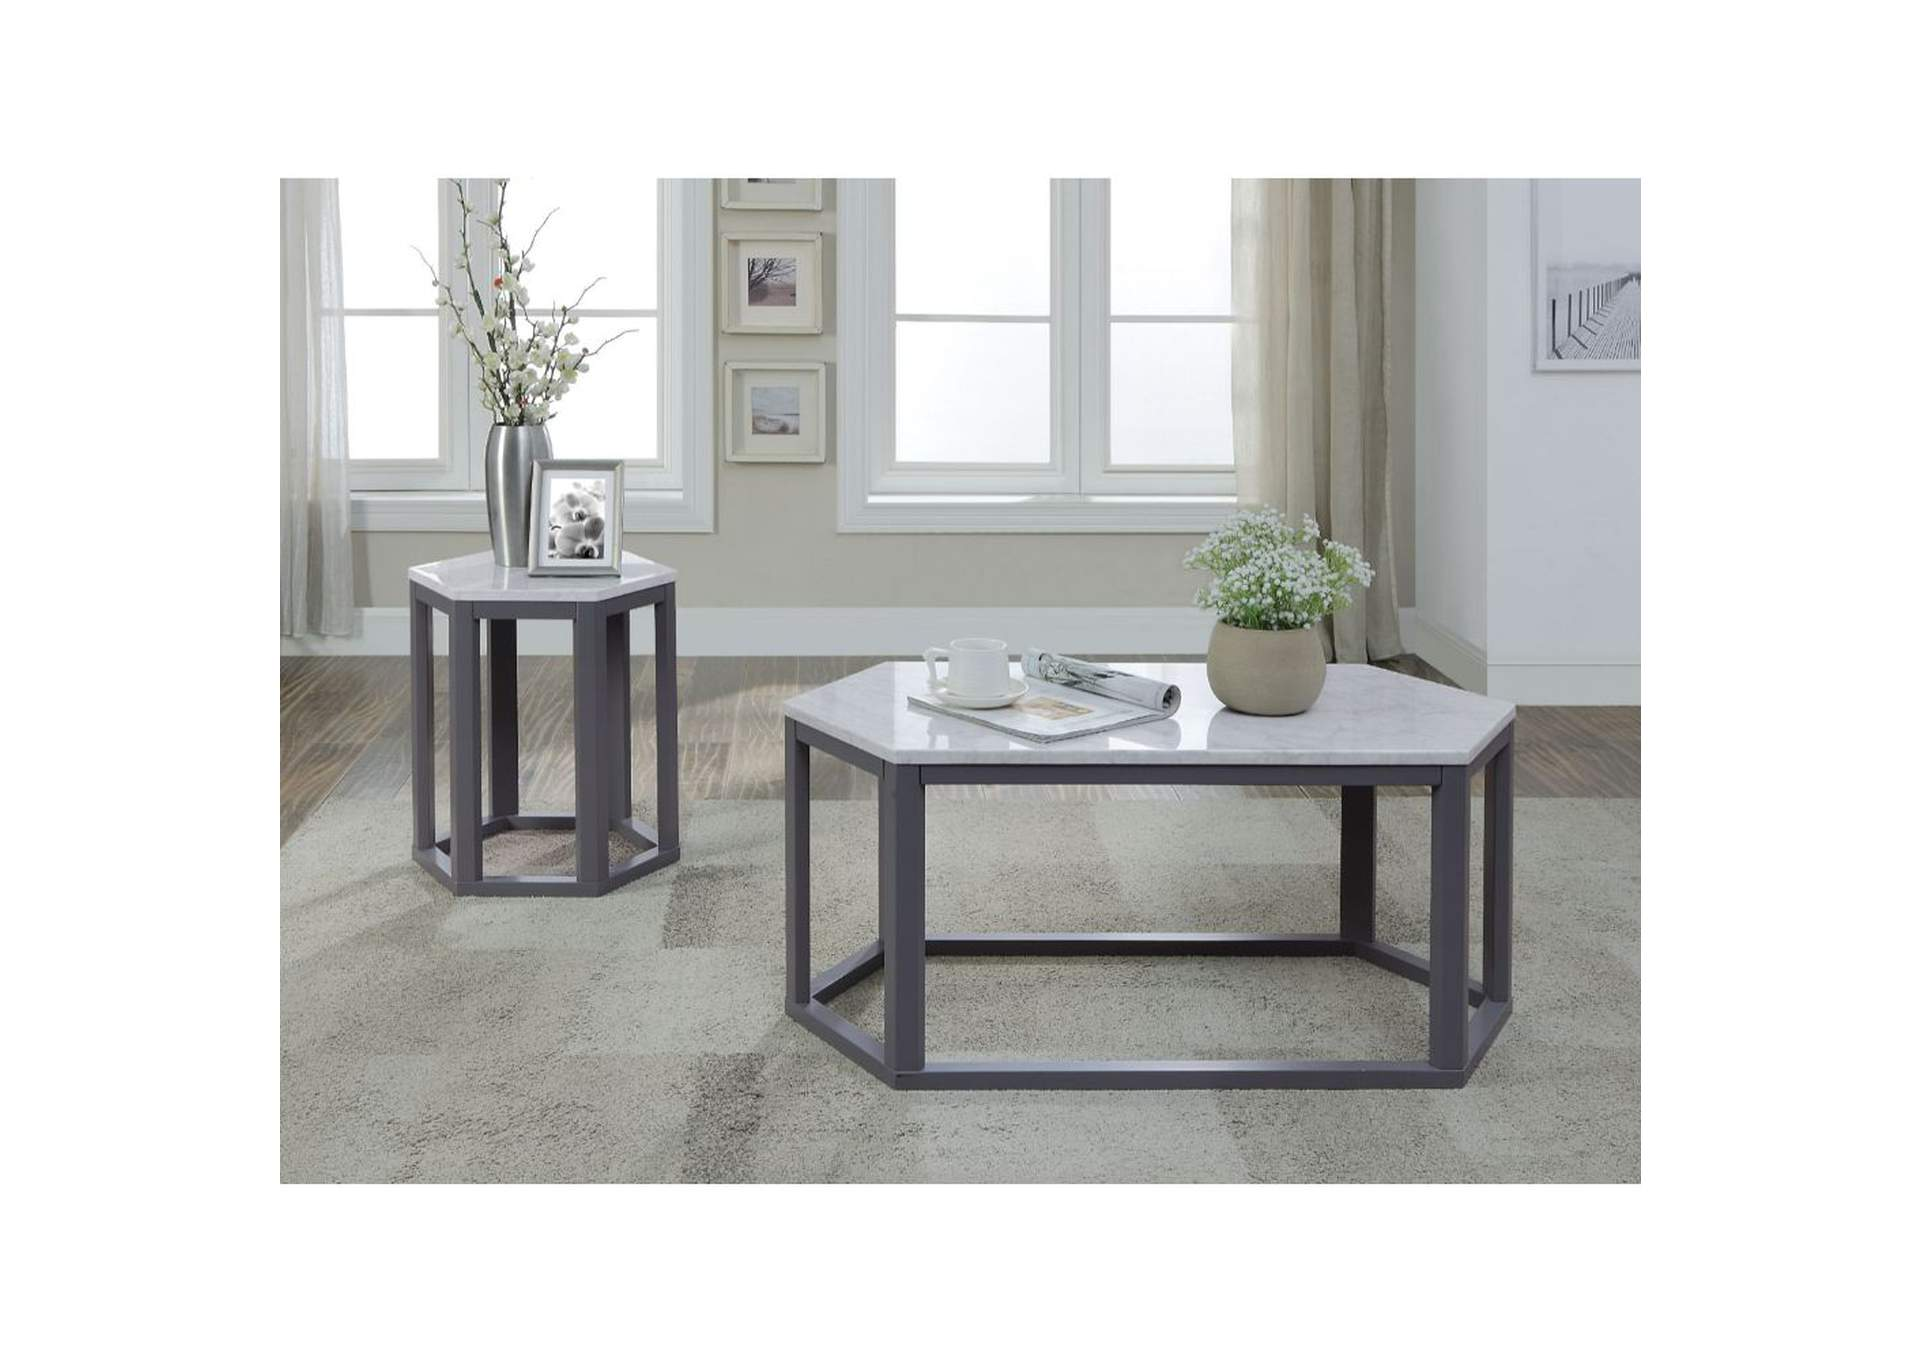 Reon Marble & Gray Coffee Table,Acme